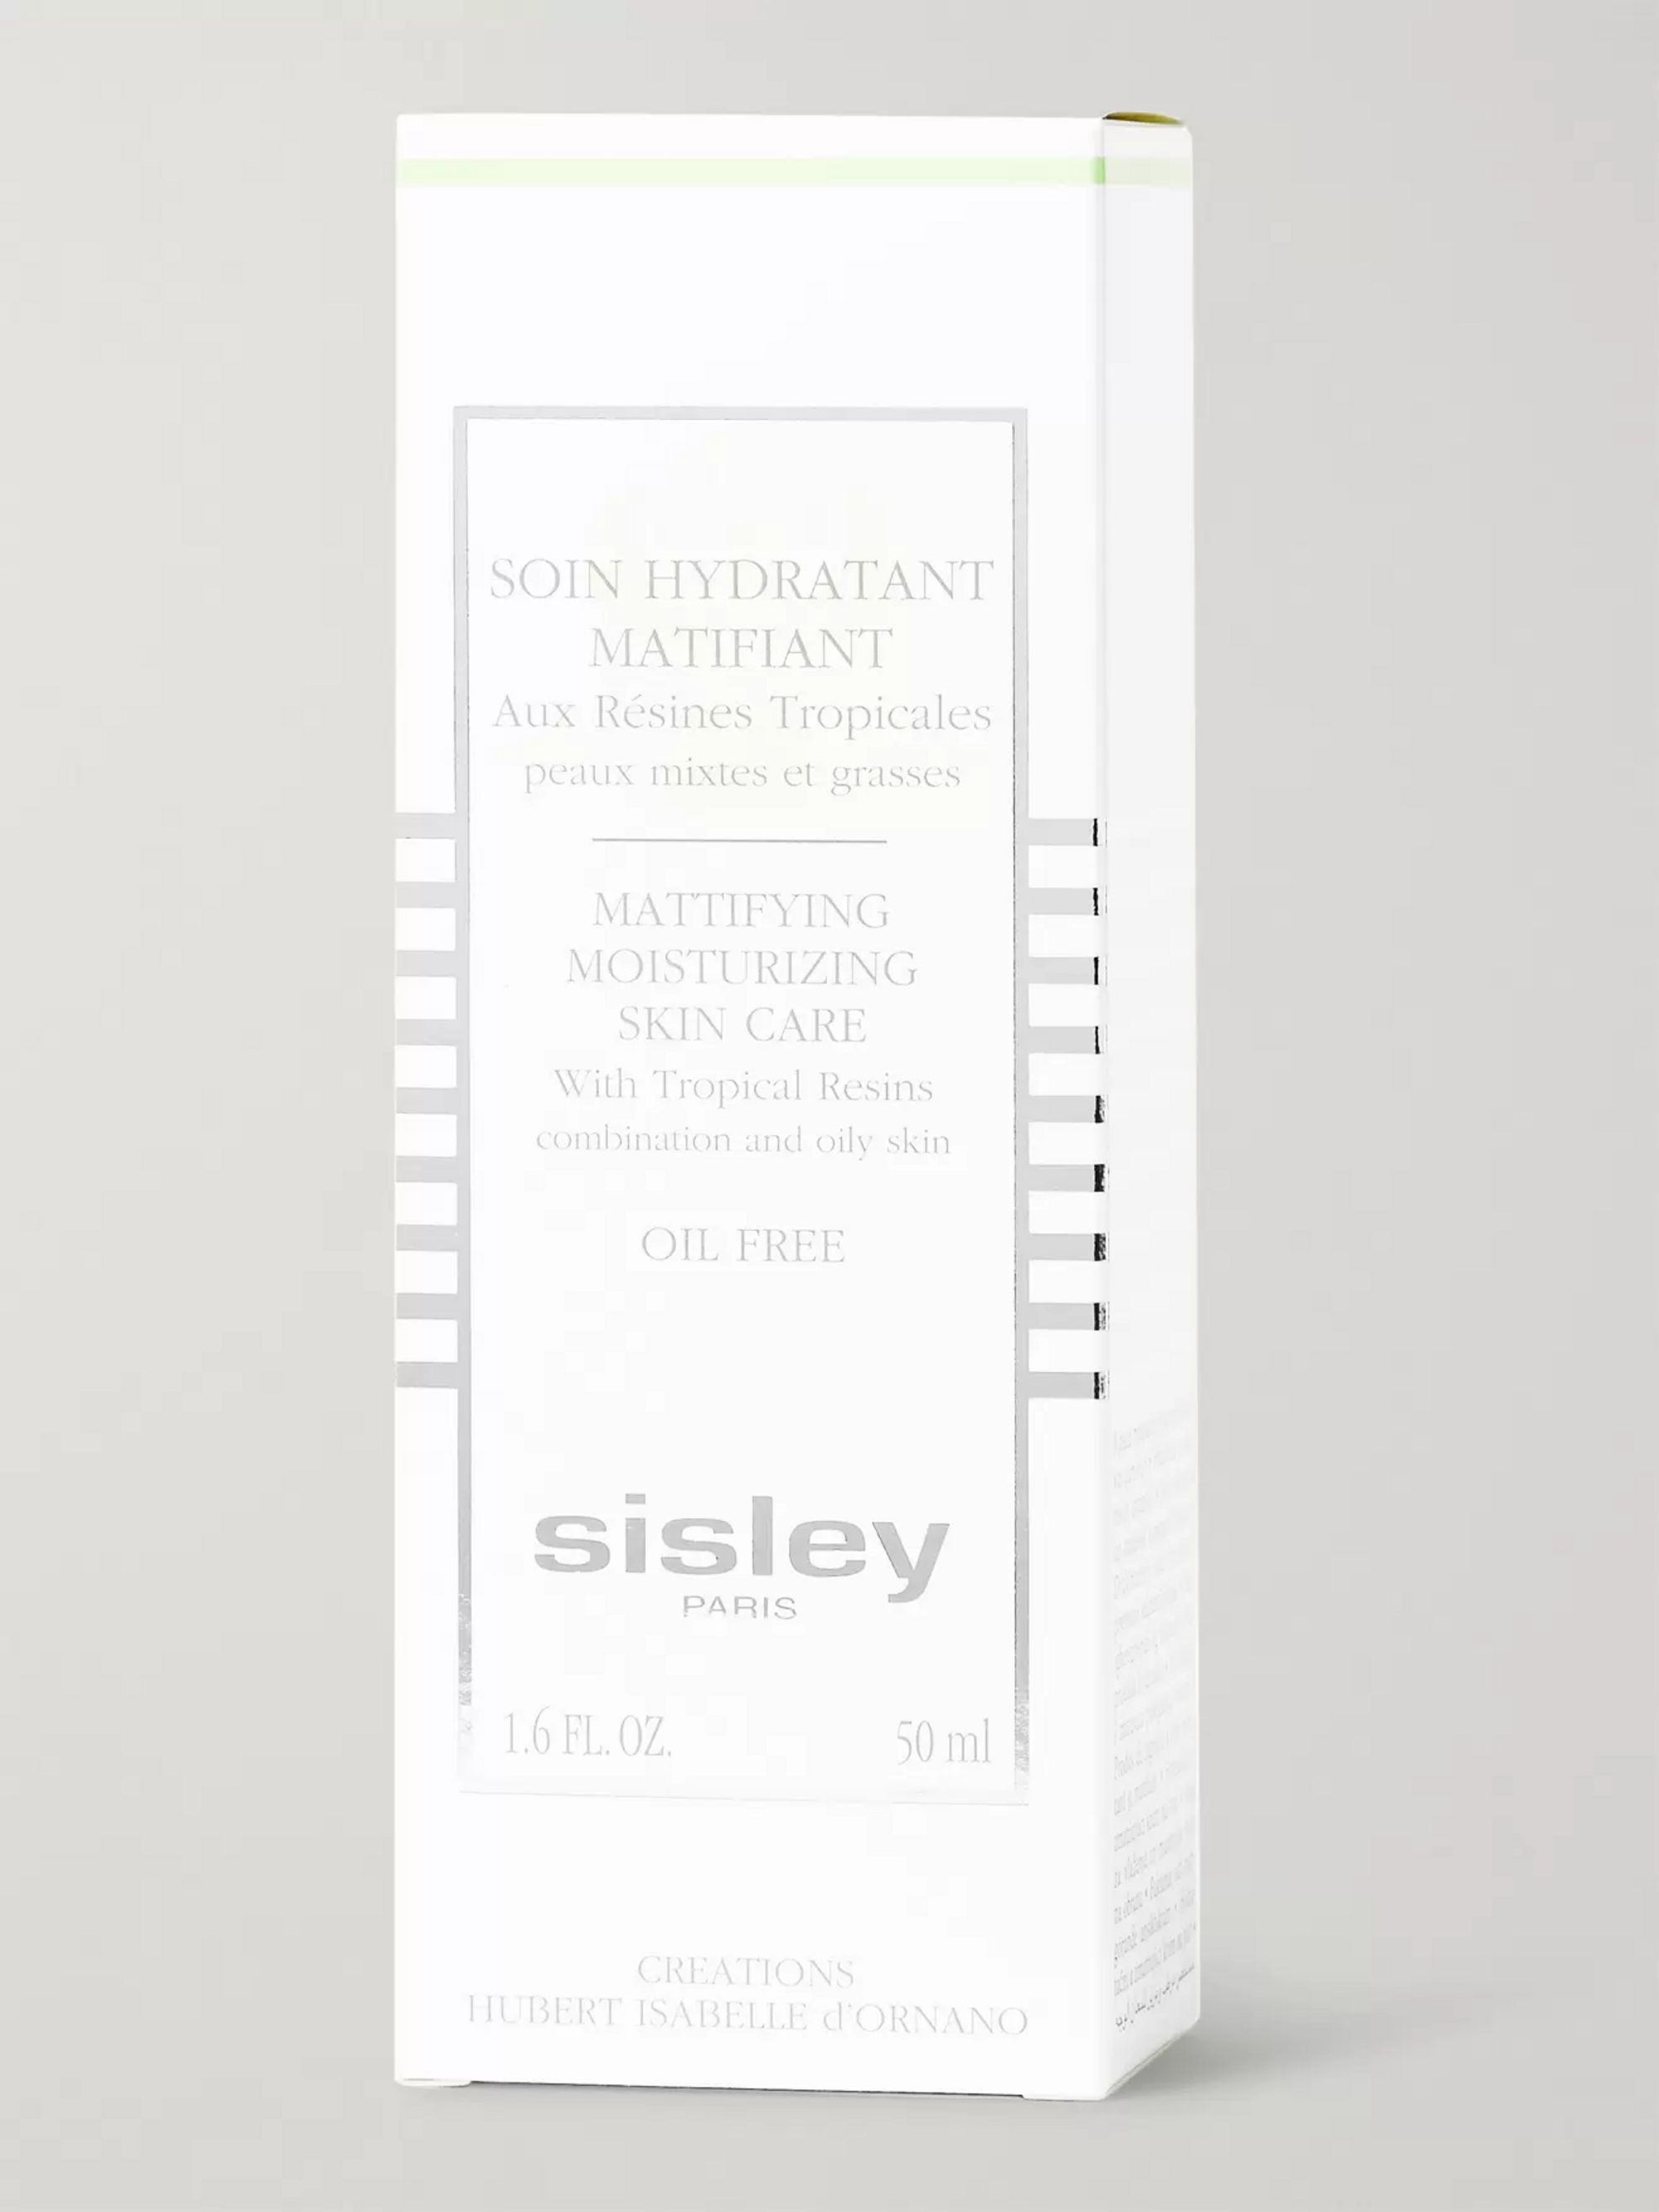 Sisley Mattifying Moisturizing Skin Care with Tropical Resins, 50ml